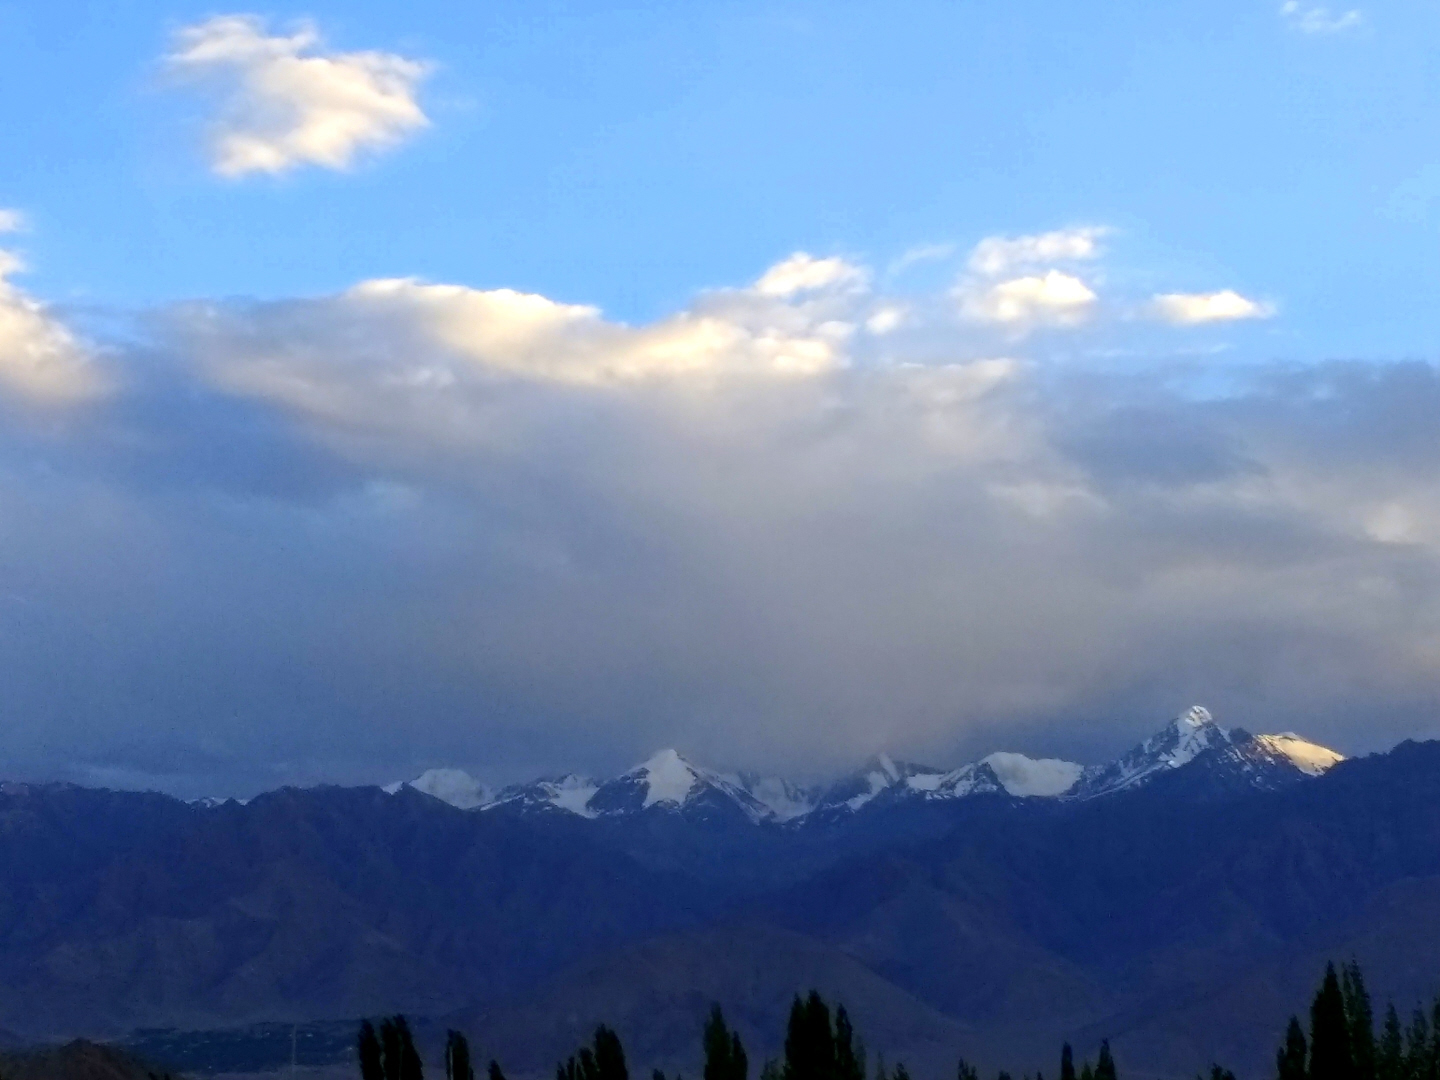 View from Leh, Ladakh - Himalaya Mountains